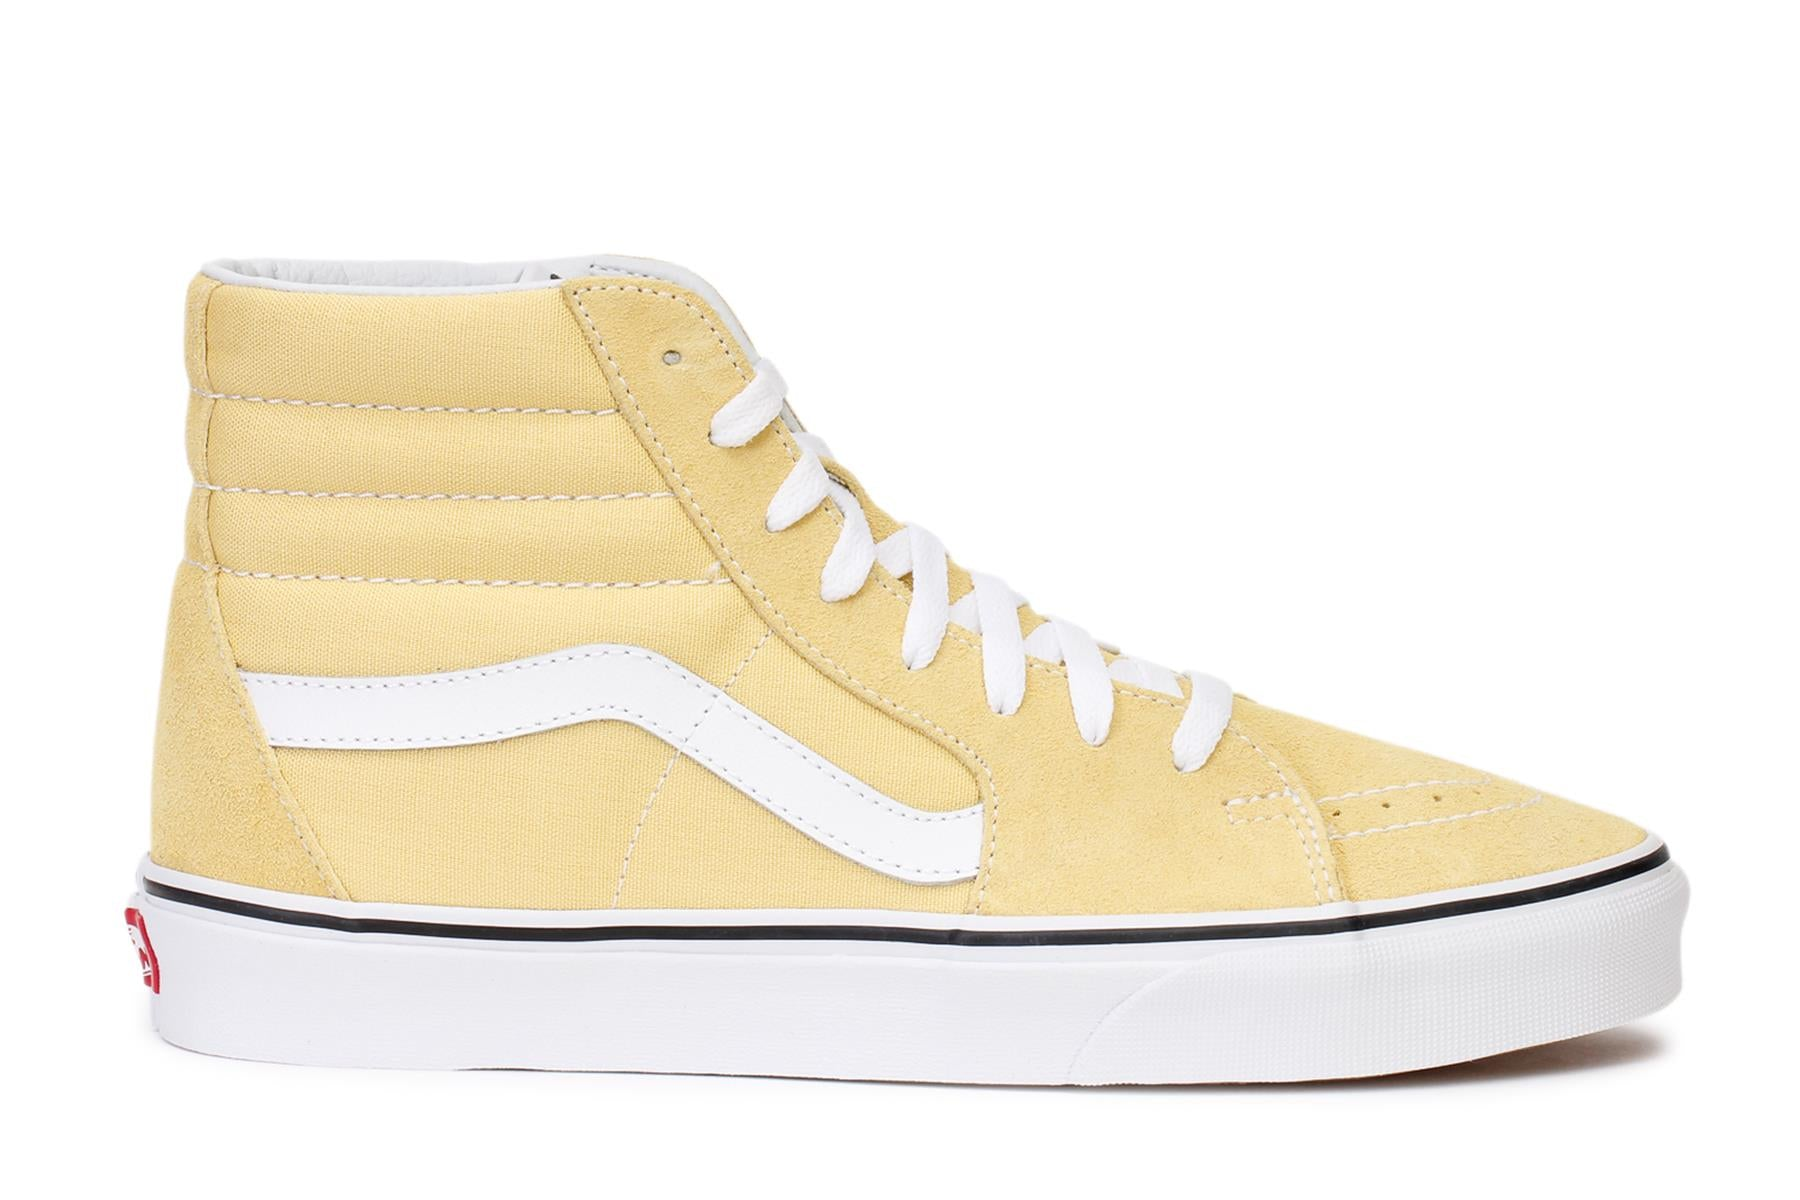 vans-mens-sk8-hi-sneakers-dusky-citron-true-white-vn0a38geoux-main